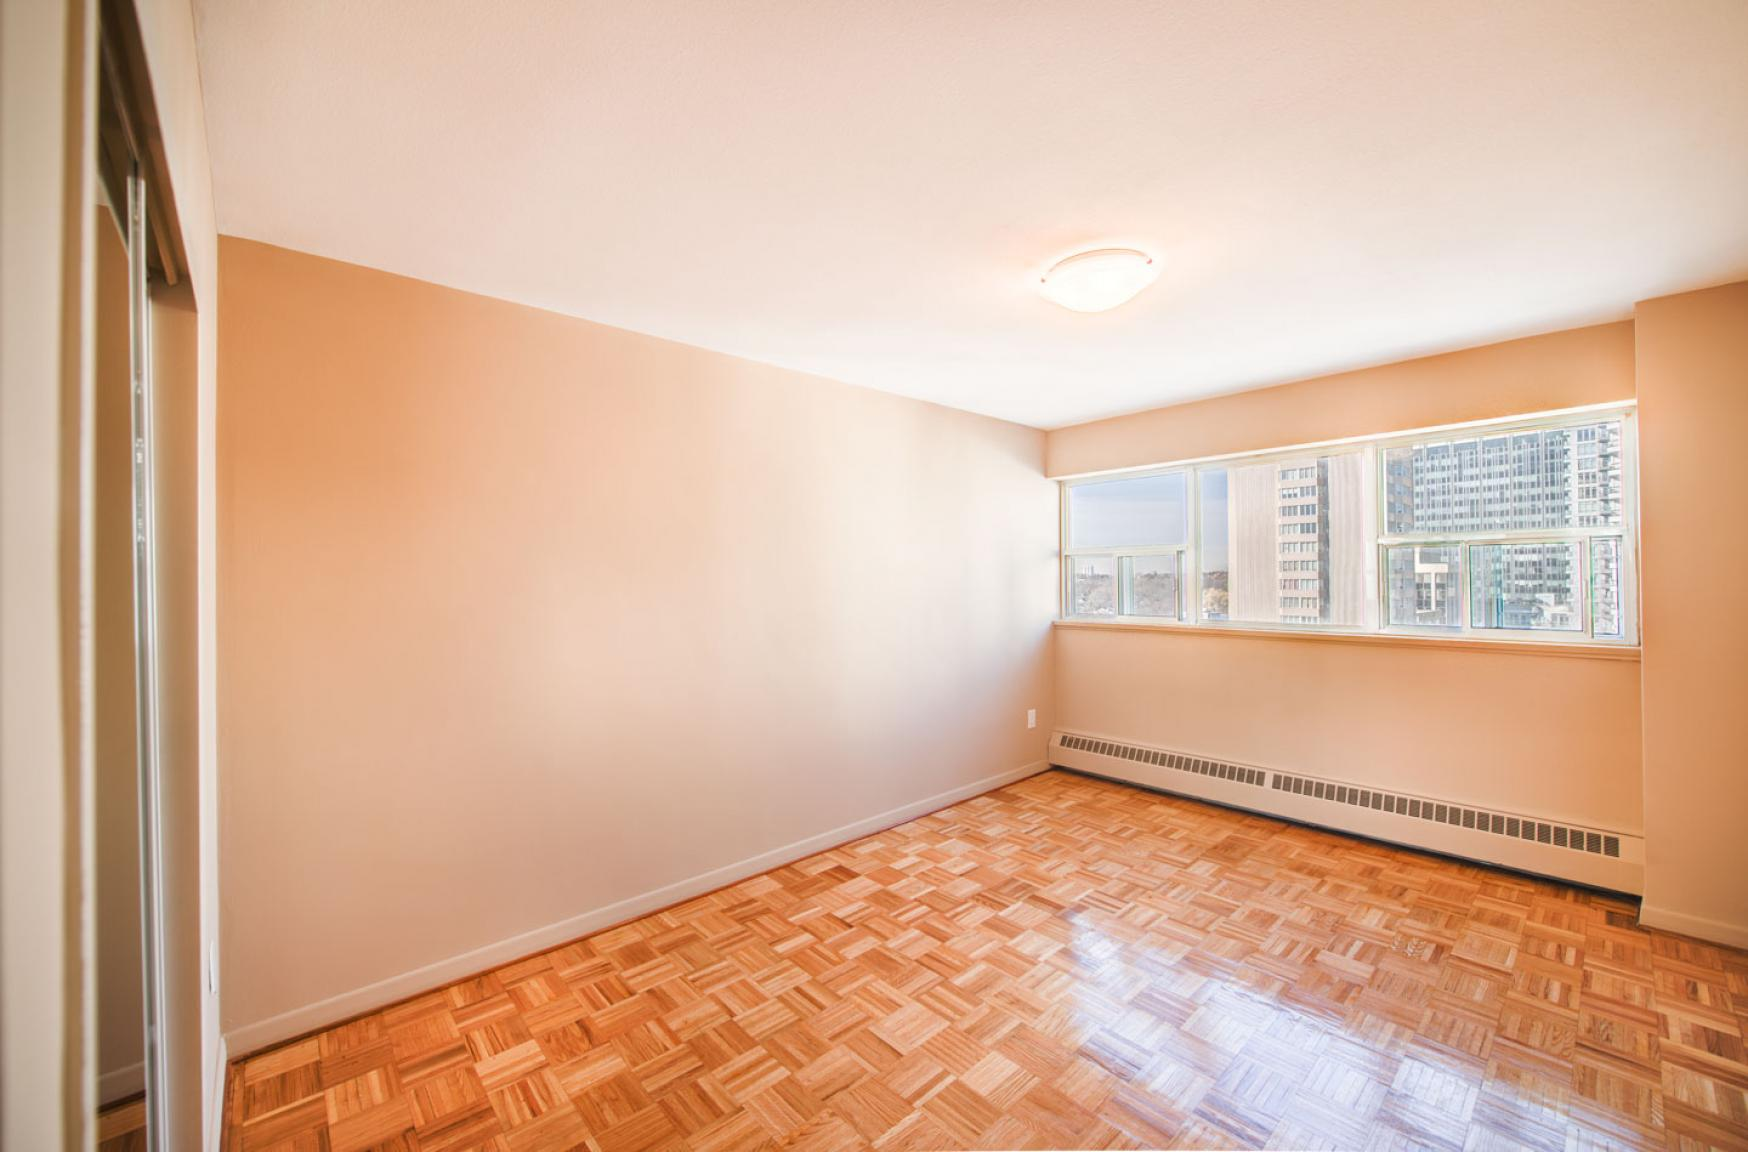 1 bedroom Apartments for rent in Toronto at Holly Tower - Photo 17 - RentersPages – L399824